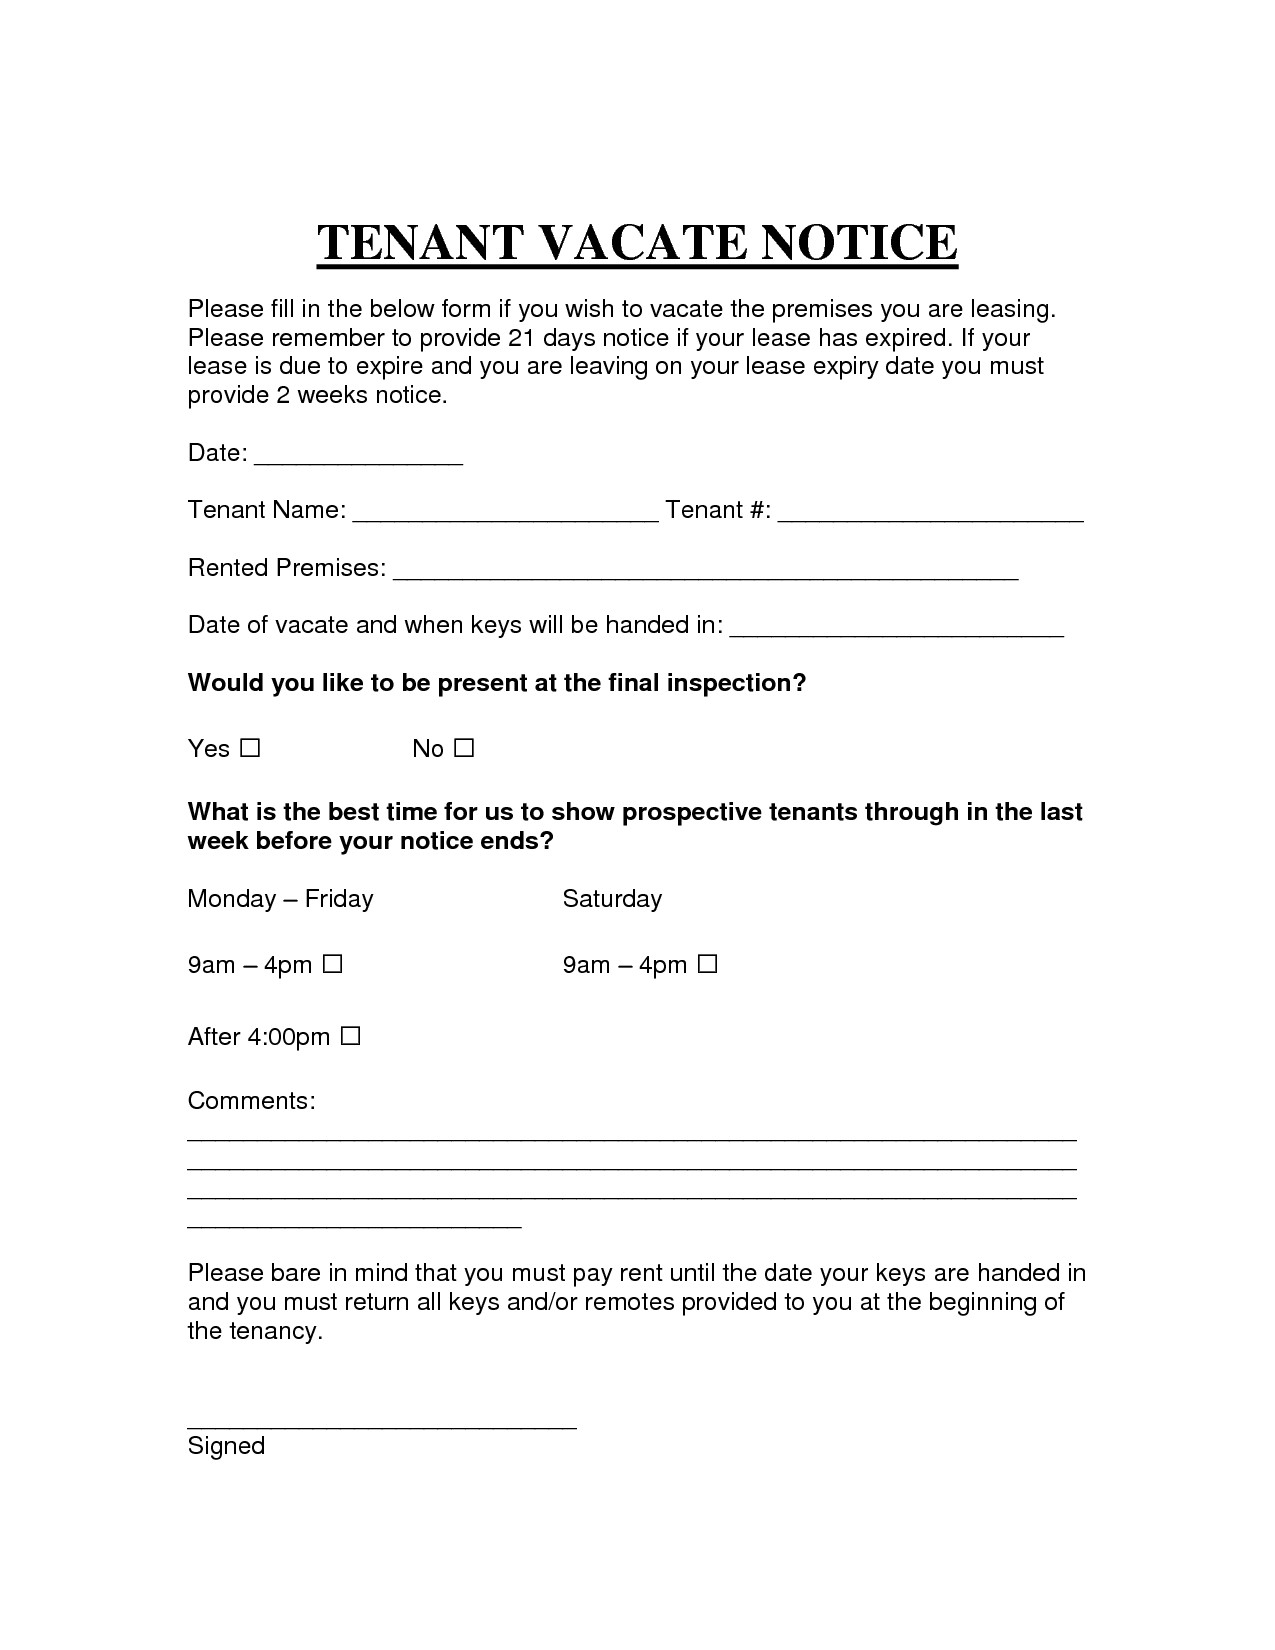 Landlord Notice Letter to Tenant Template - Template Letter to Leave Property New Printable Sample Vacate Notice